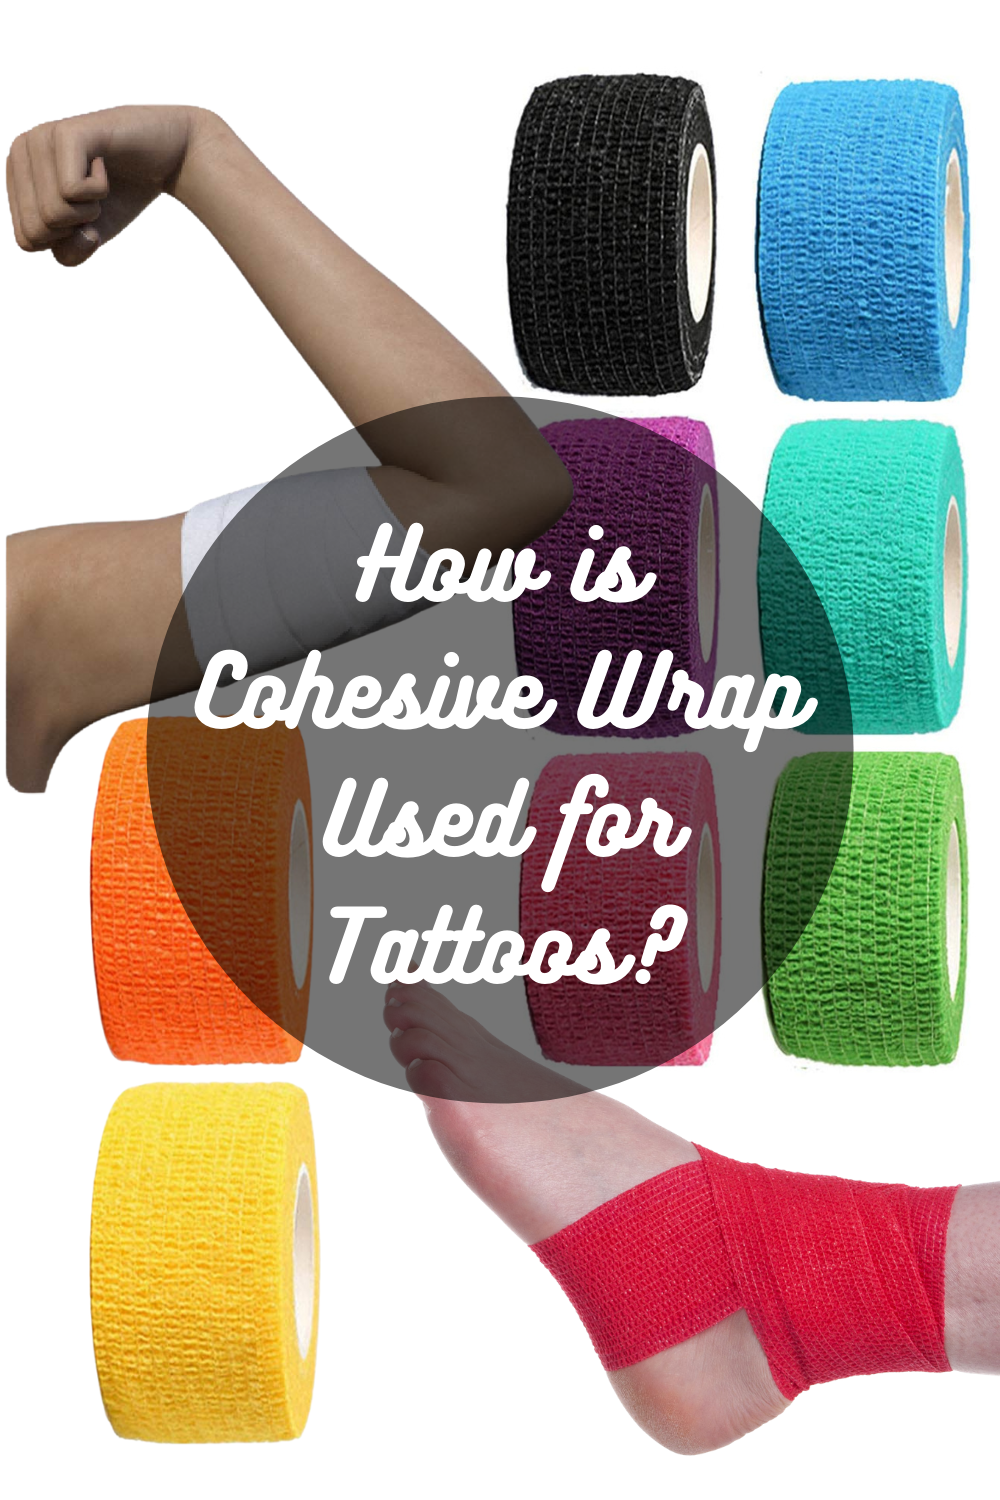 Who is Cohesive Wrap used for tattoos?